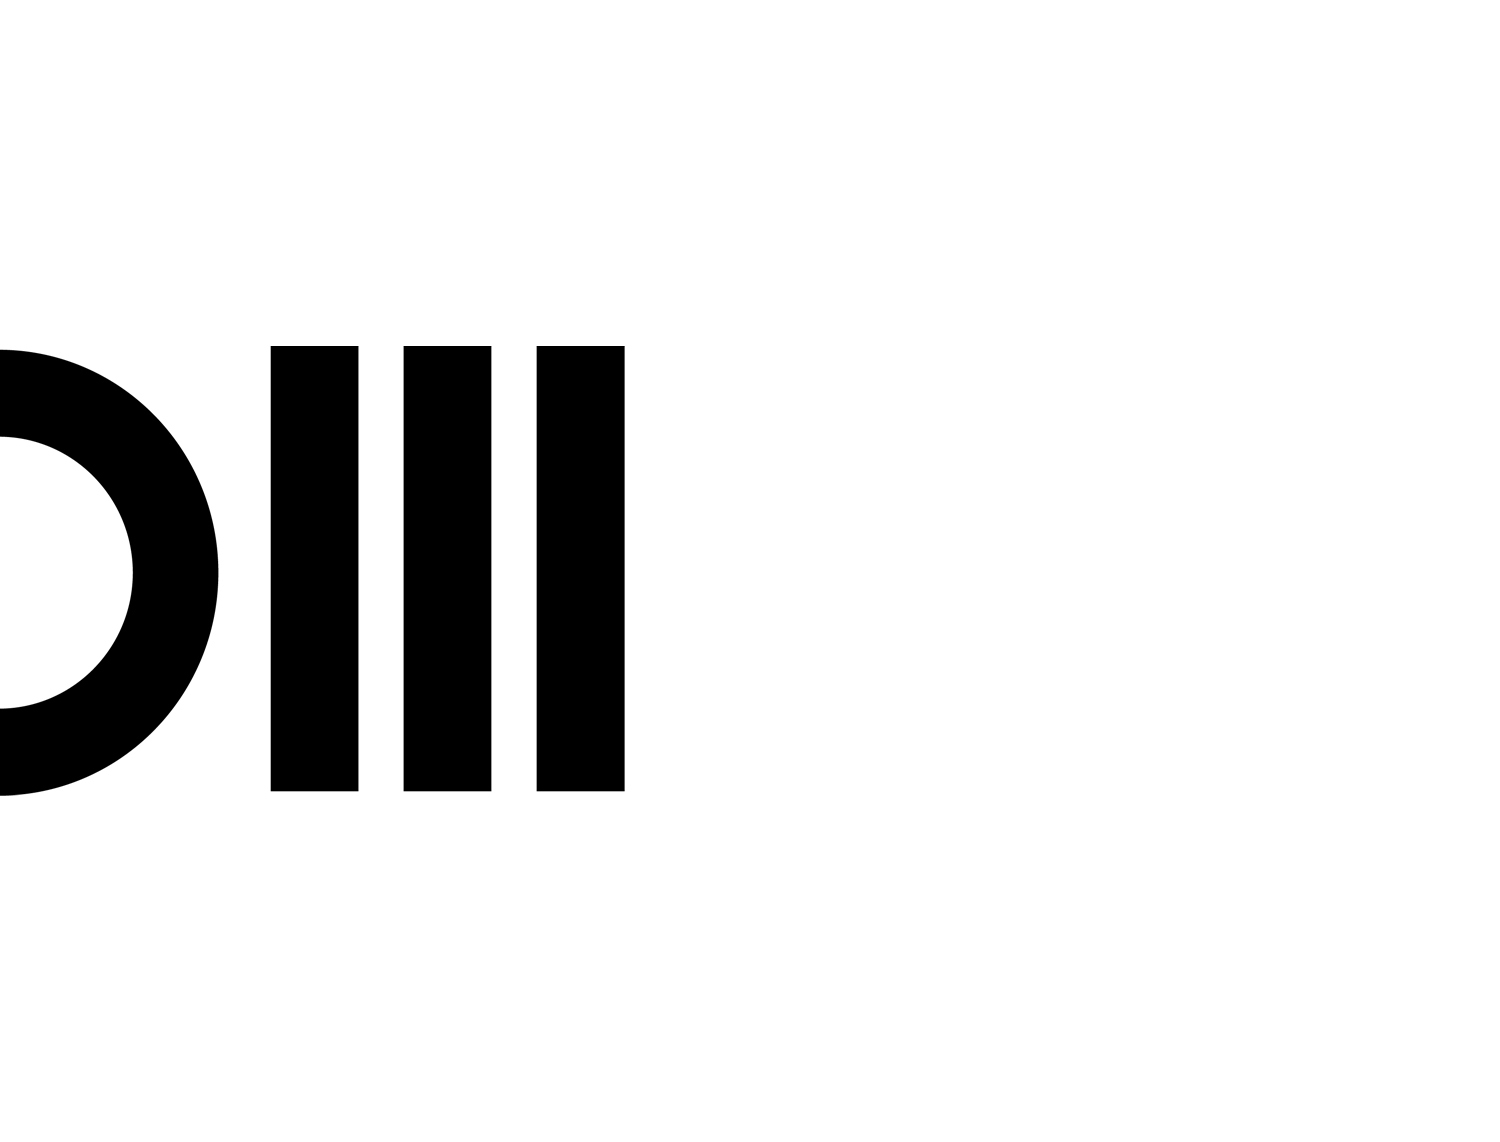 The logotype can be read both as »DM« and a binary code (0111)